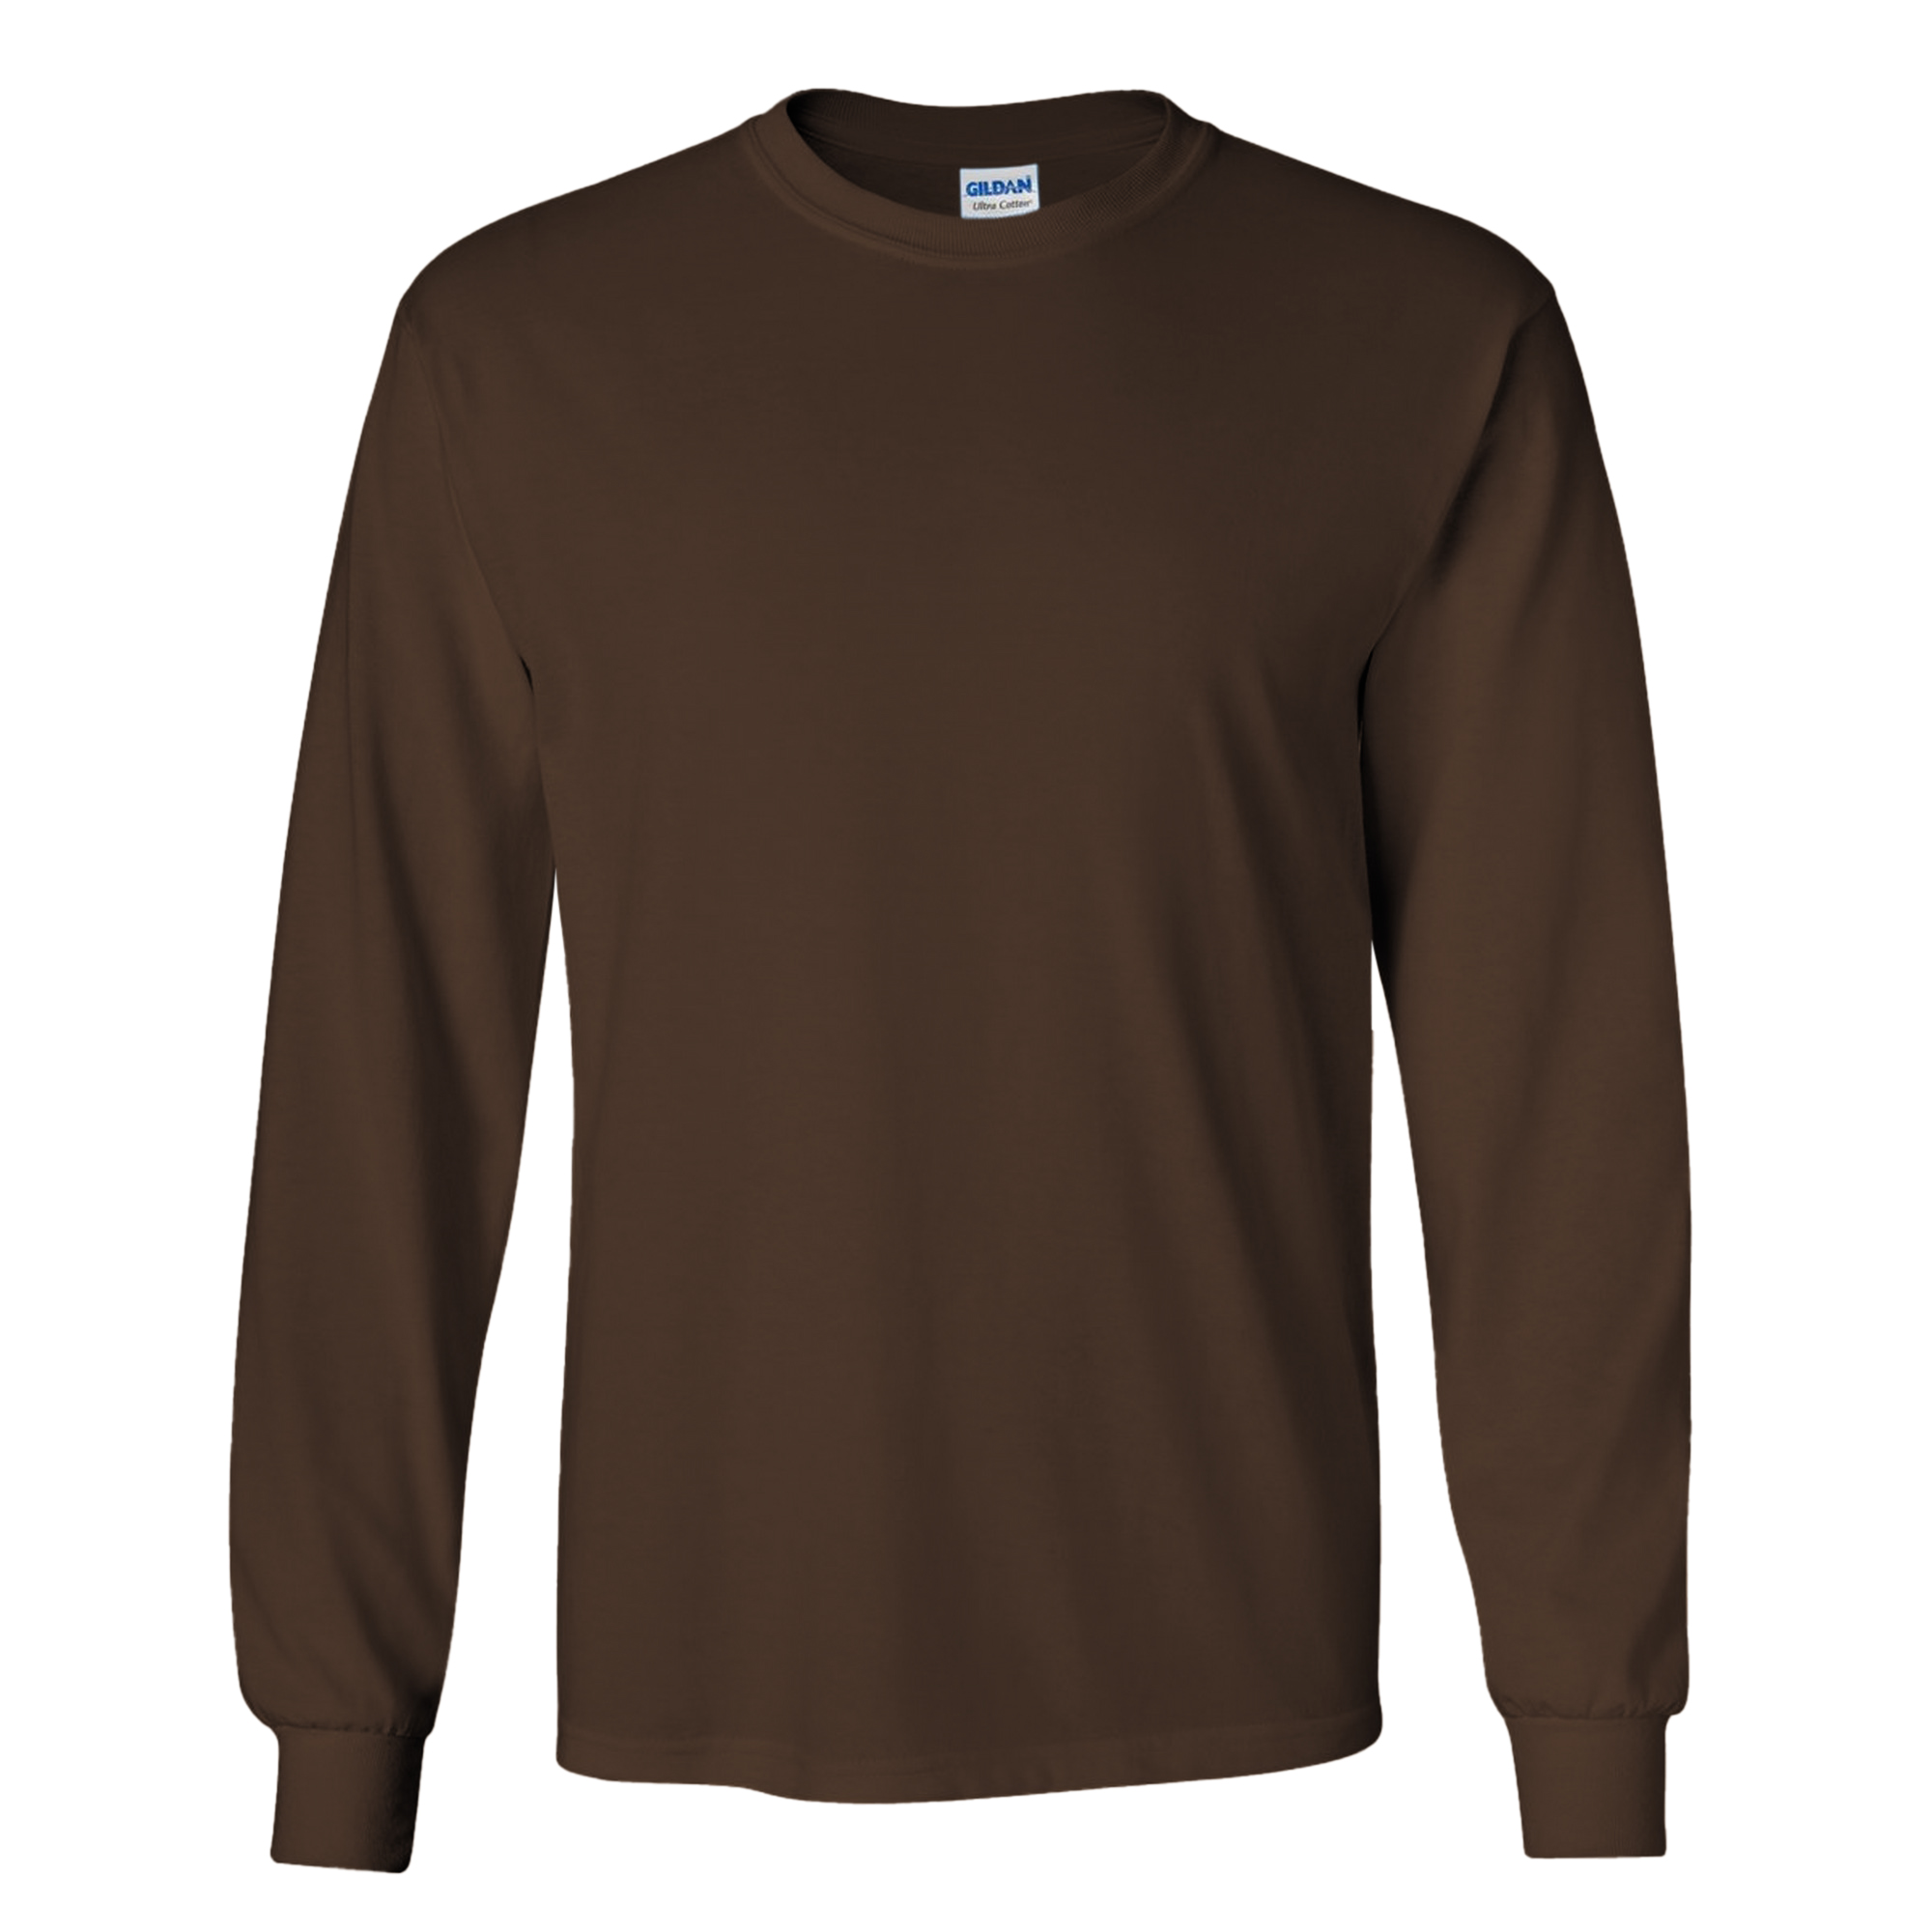 Find great deals on eBay for mens long sleeve cotton t shirts. Shop with confidence.